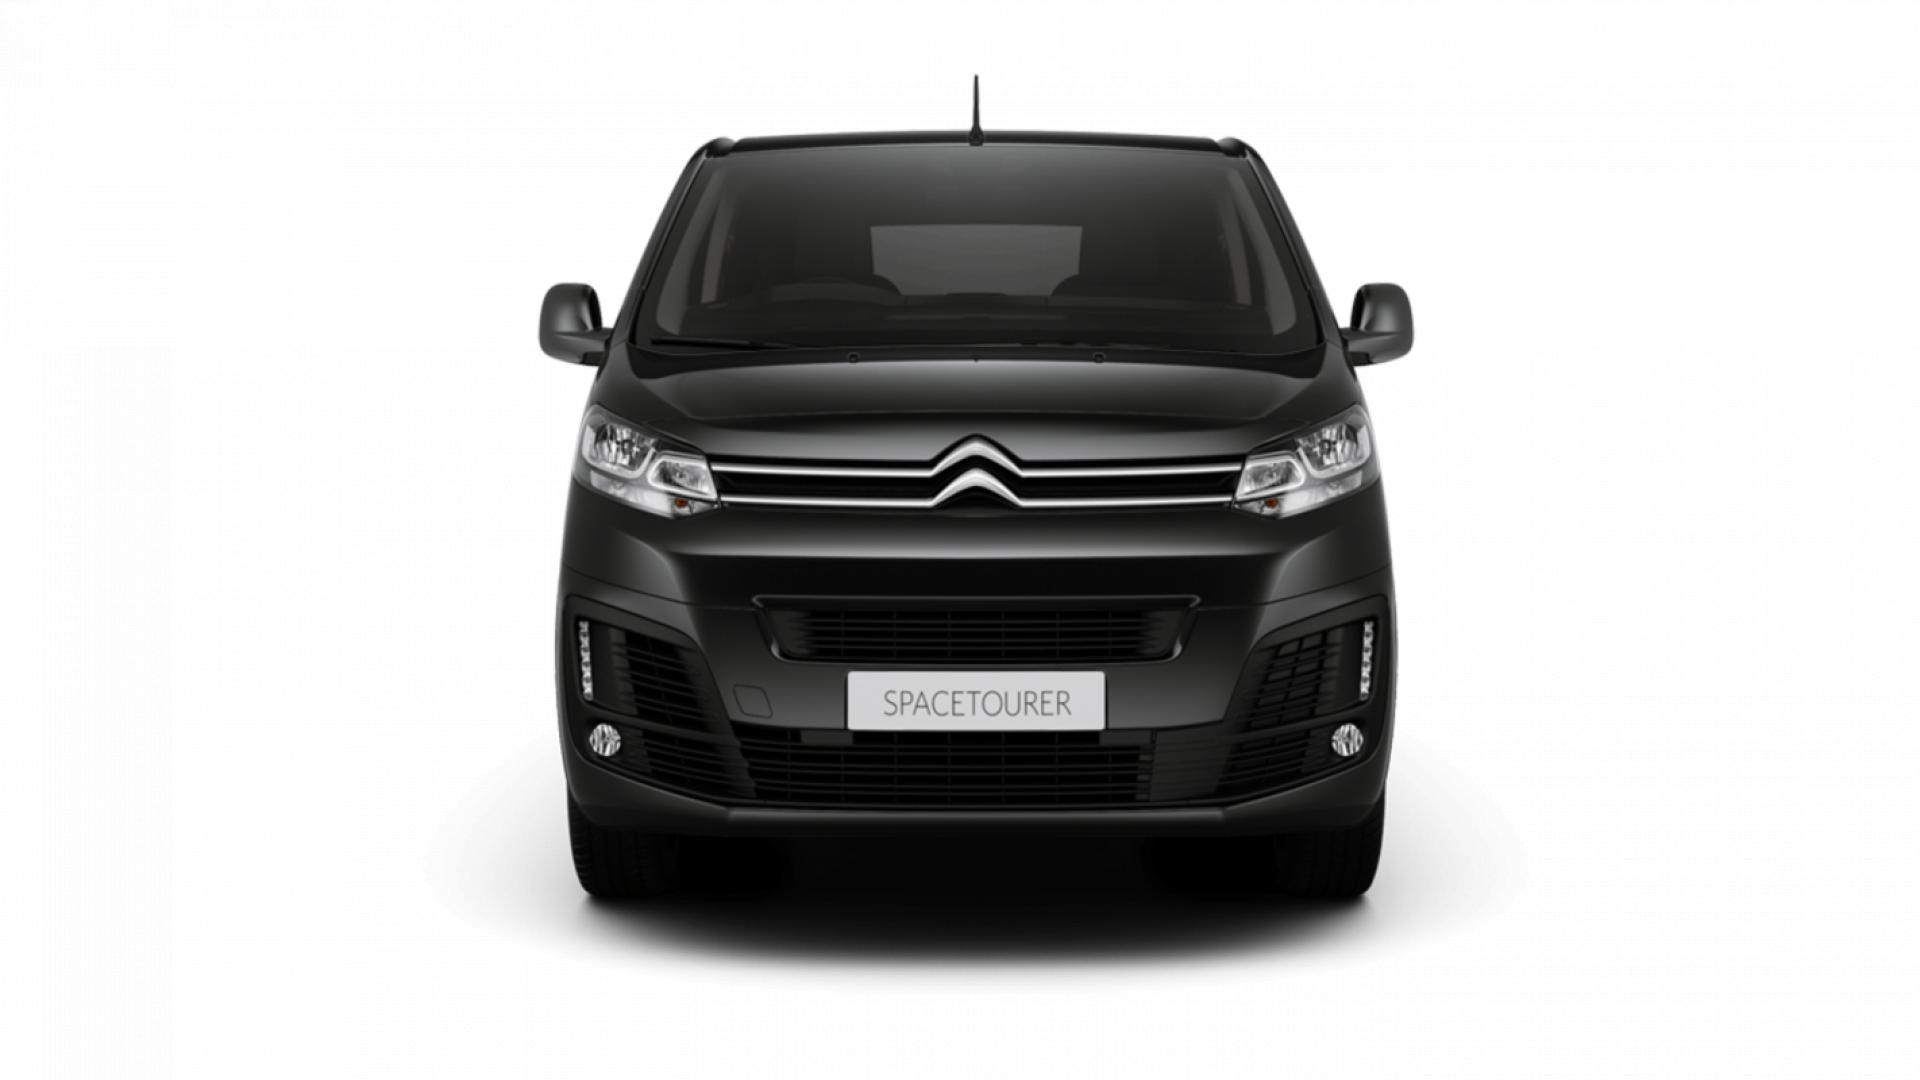 motability citroen space tourer estate 1 6 bluehdi 115 feel xl 5dr robins and day. Black Bedroom Furniture Sets. Home Design Ideas